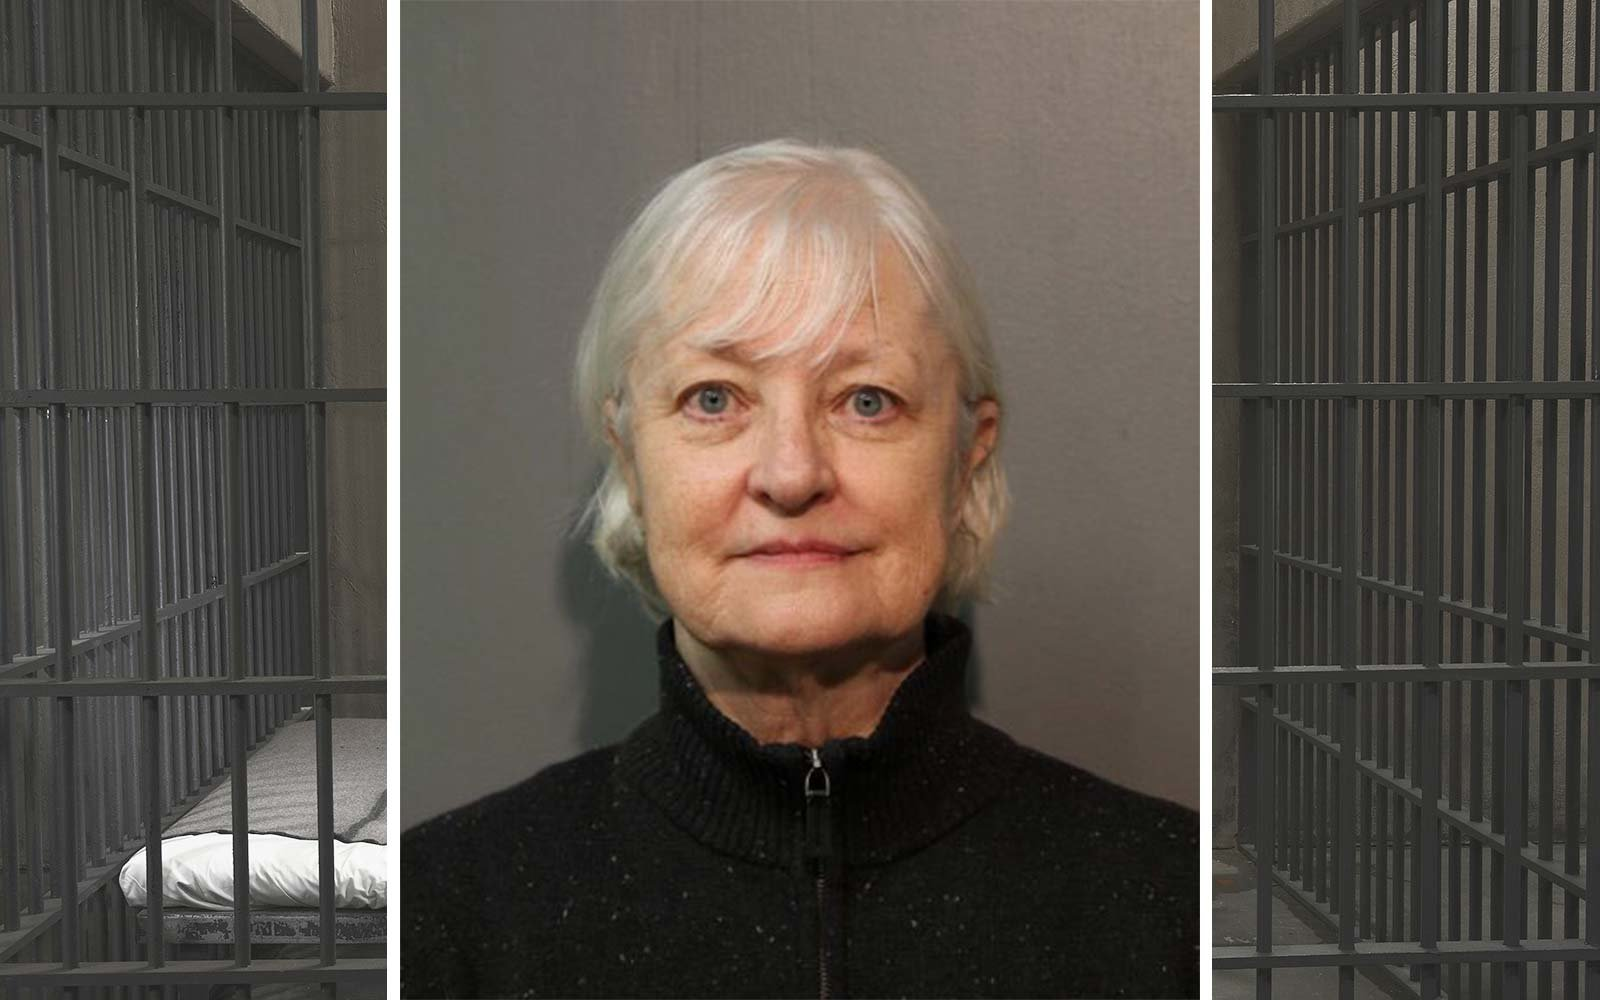 'Serial Stowaway' woman arrested again at Chicago airport